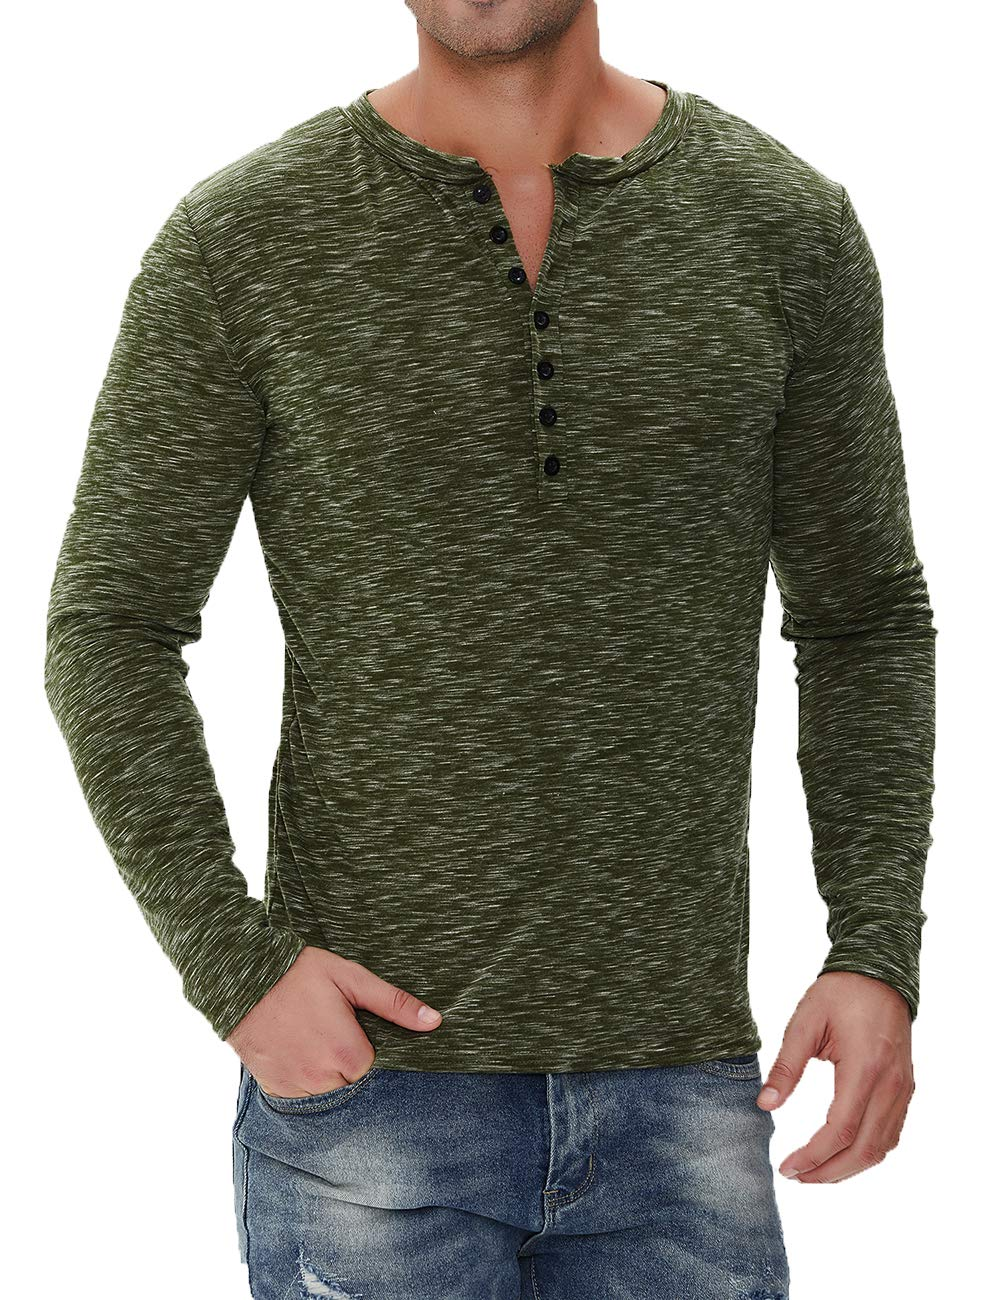 BABEIYXM Men's Soild Henley Short/Long Sleeve Tops Buttons Front Casual T Shirts Tee,Army Green,S